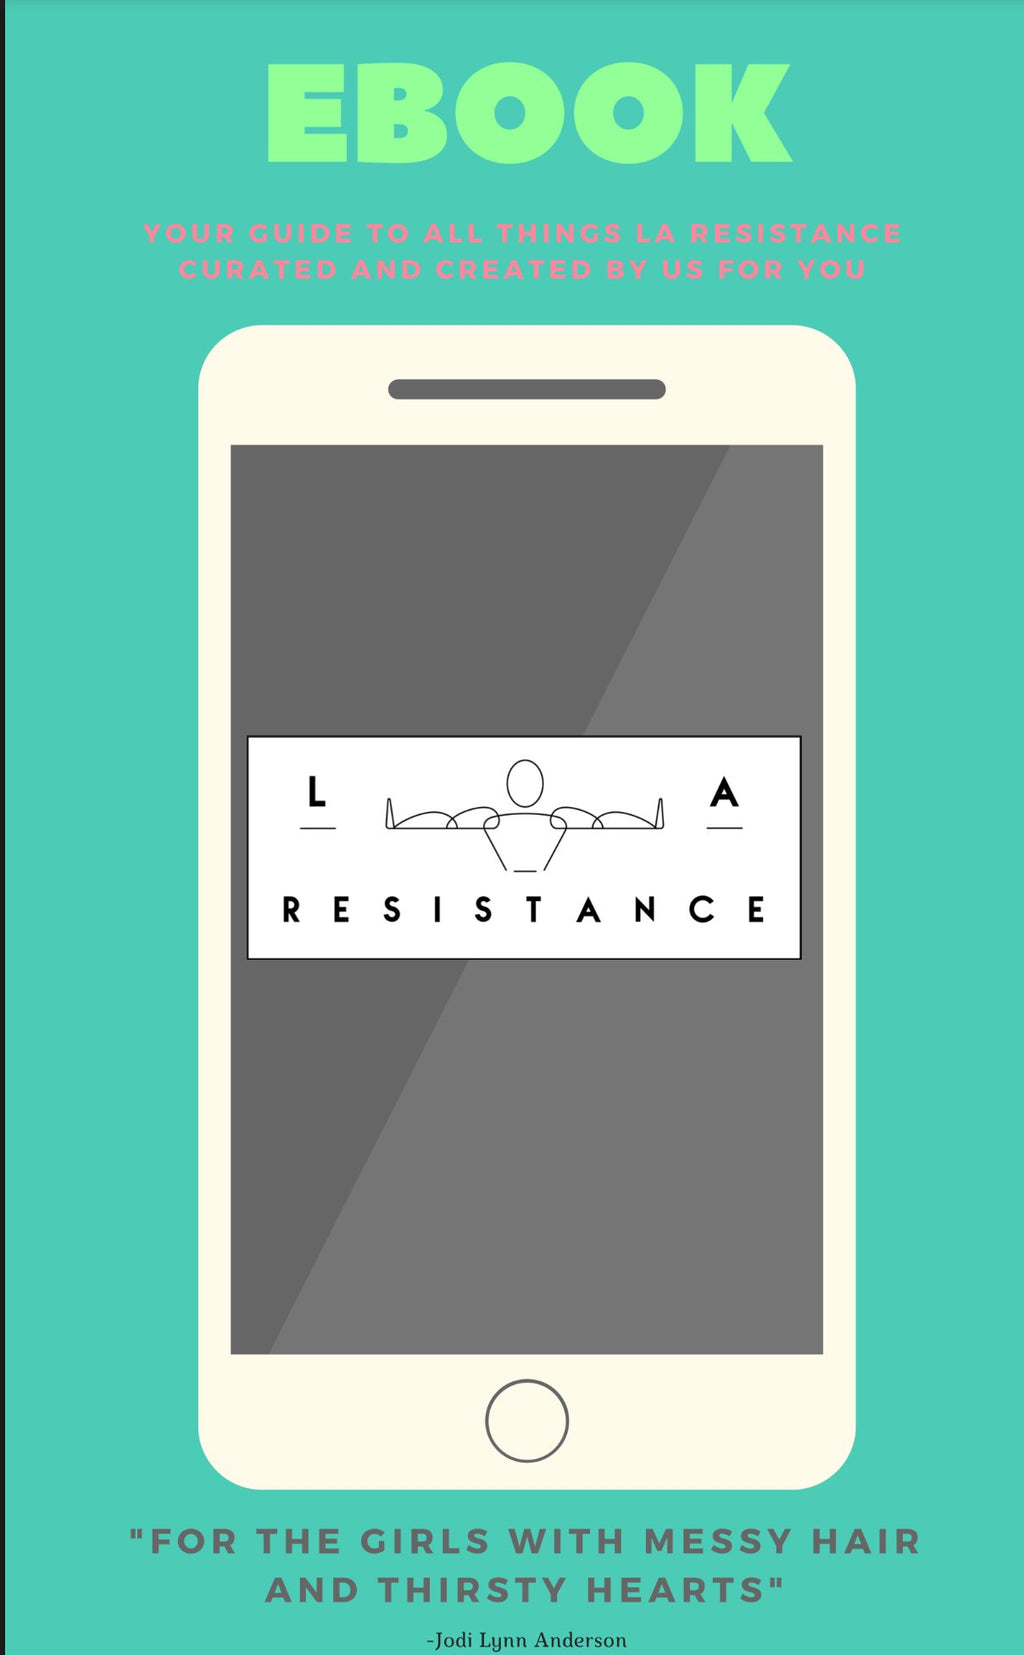 Ebook that consists of at home and gym workouts using resistance bands. L.A. Resistance.